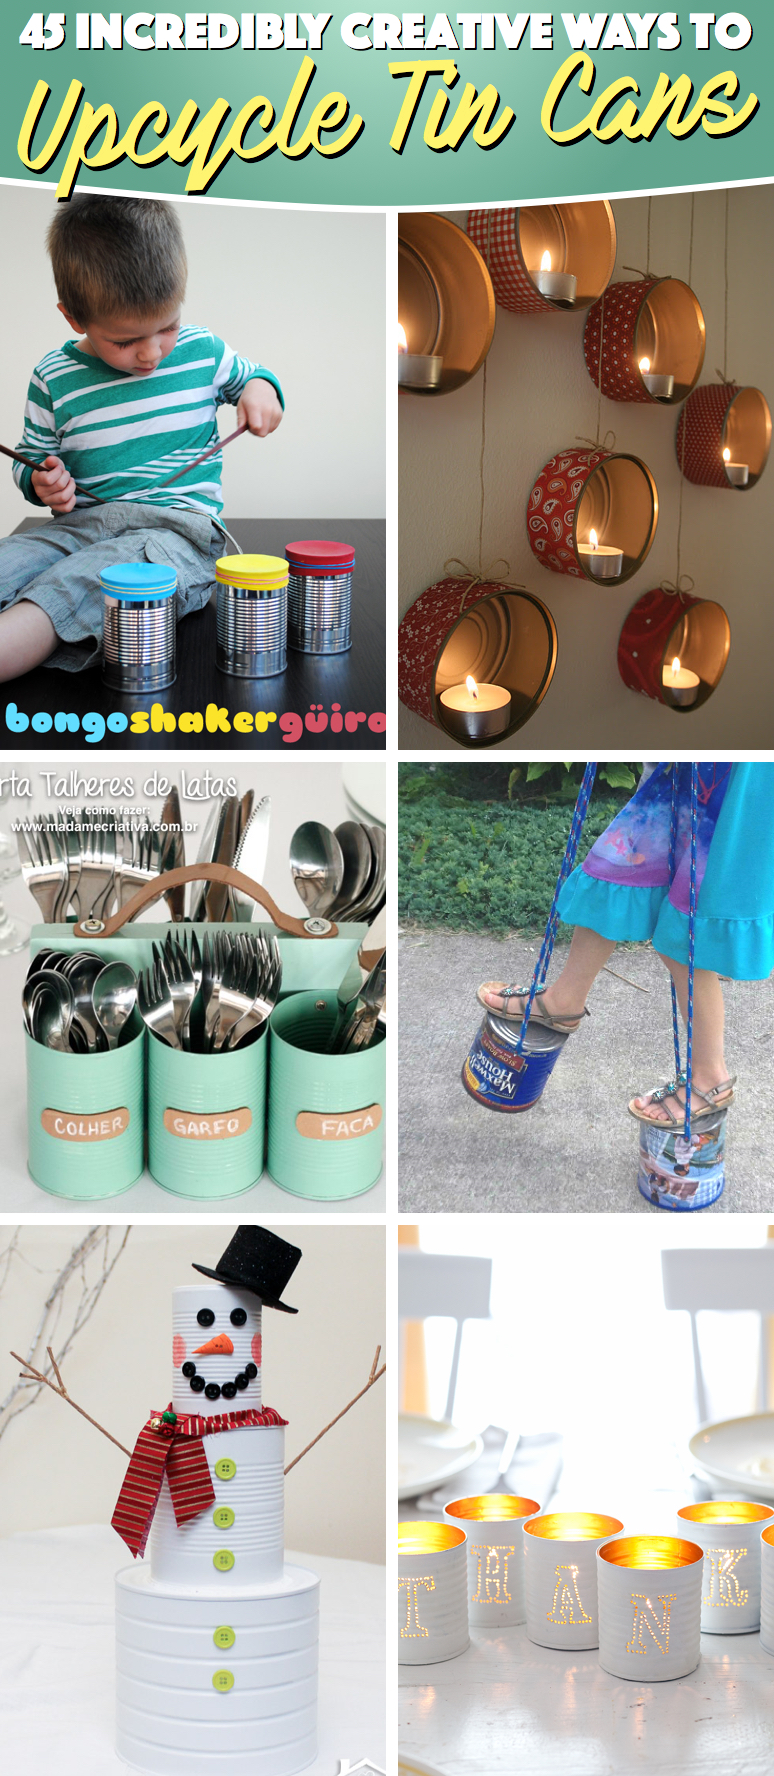 45 Ideas About Upcycling Tin Cans And Turning Them Into An All New Thing Of Wonder Cute Diy Projects